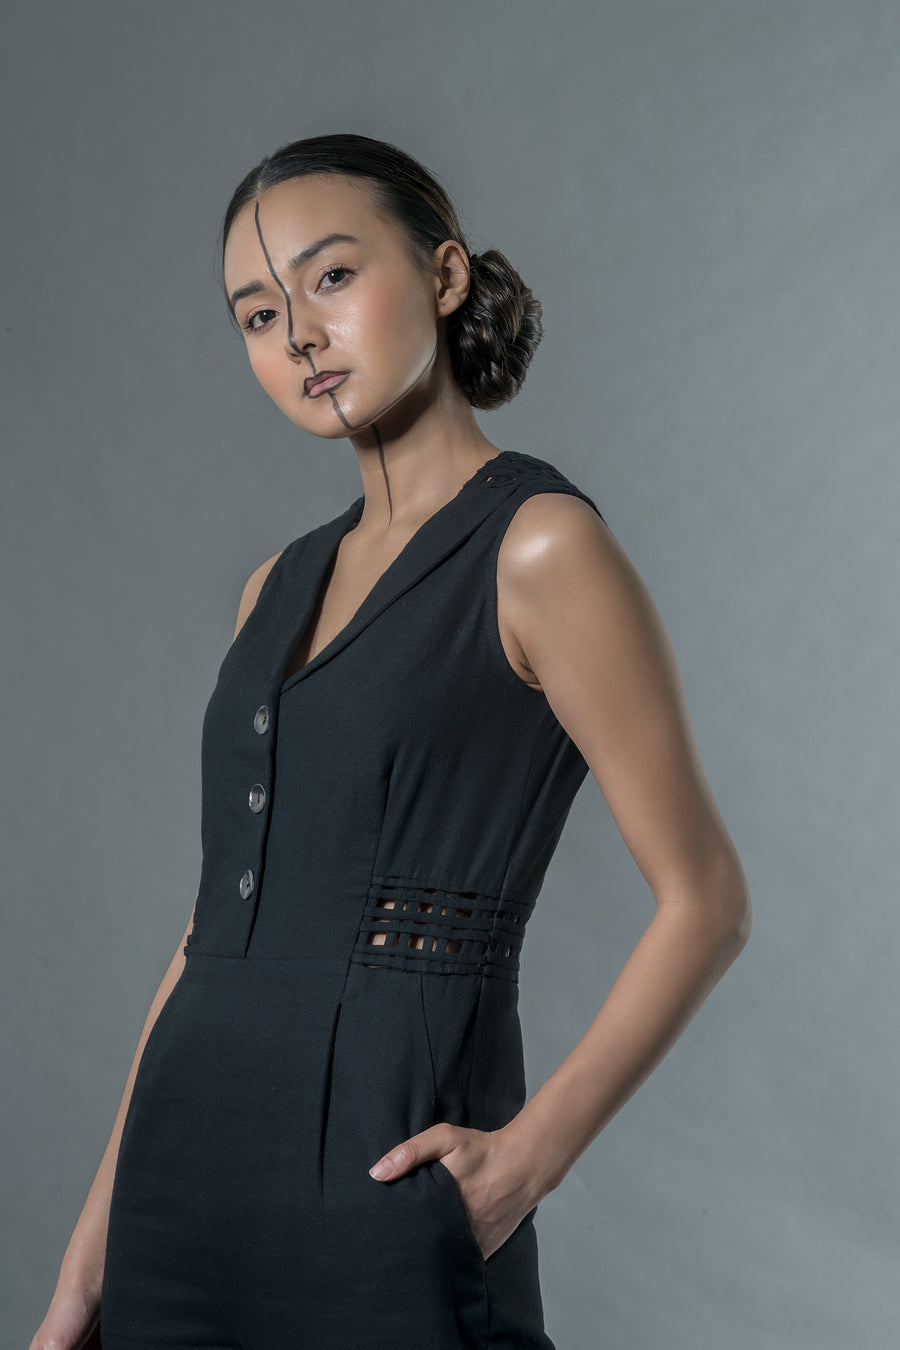 Black jumpsuit with matting - Ethical made fashion - onlyethikal